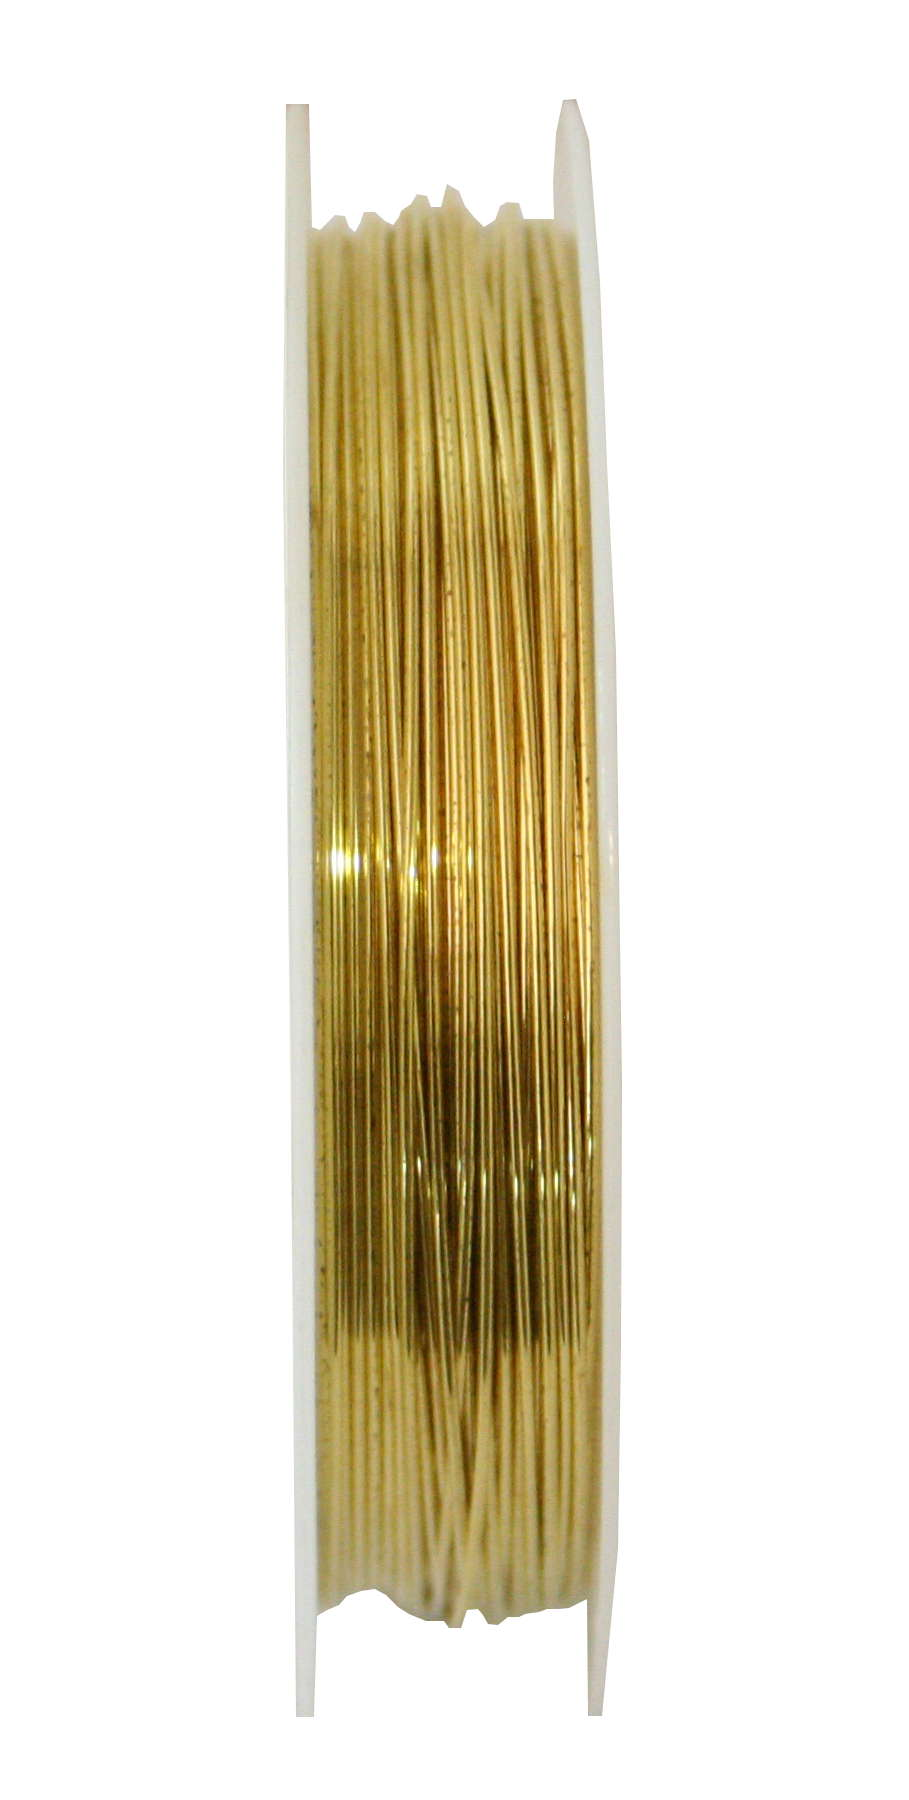 Beading wire, gold, 0.4mm, 8m